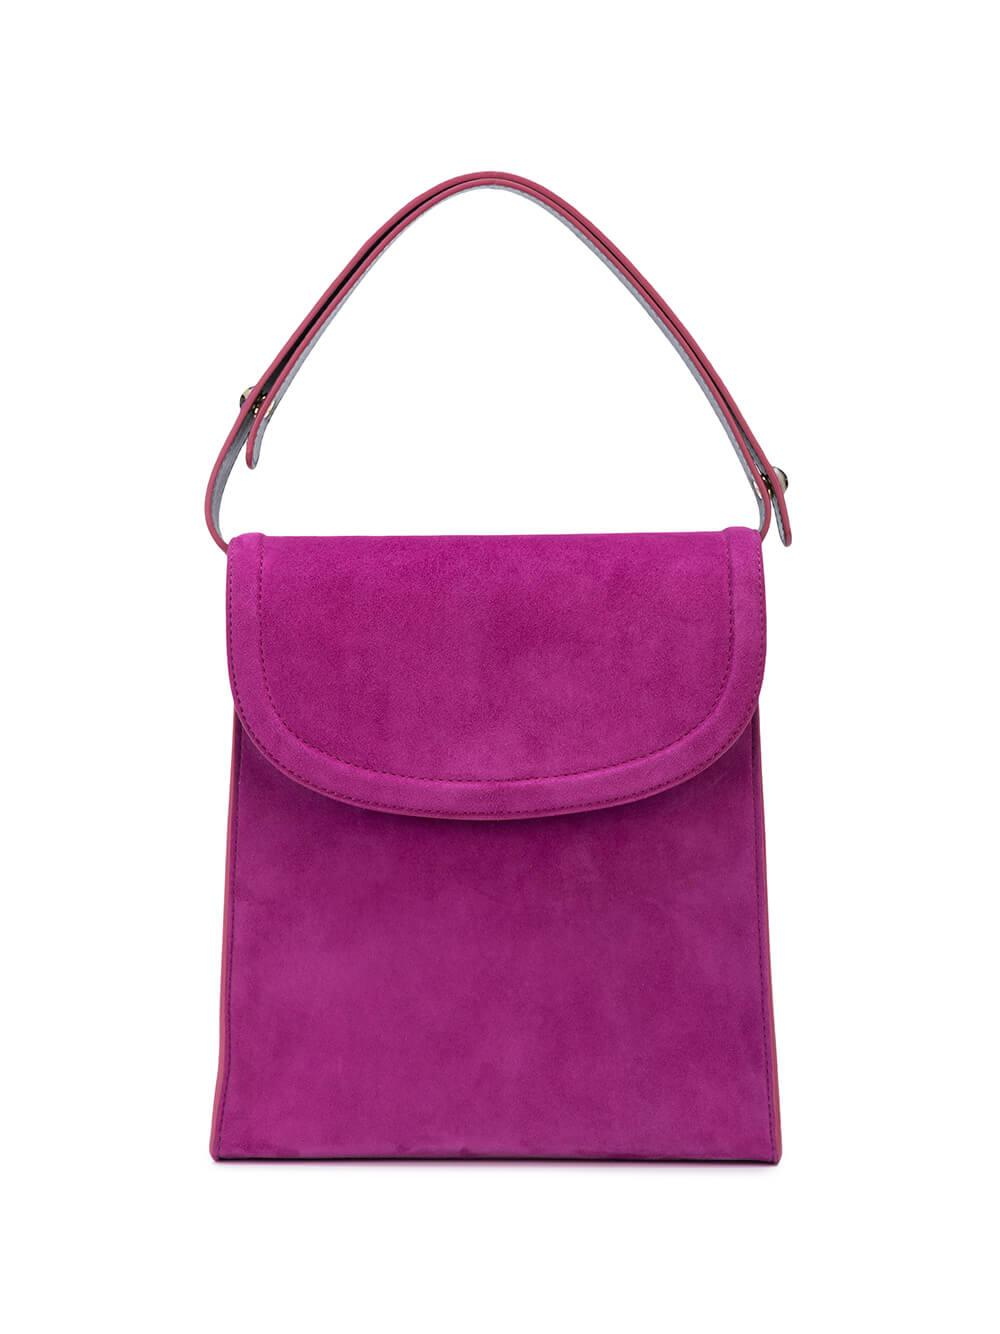 Teddy Top Handle Suede Bag